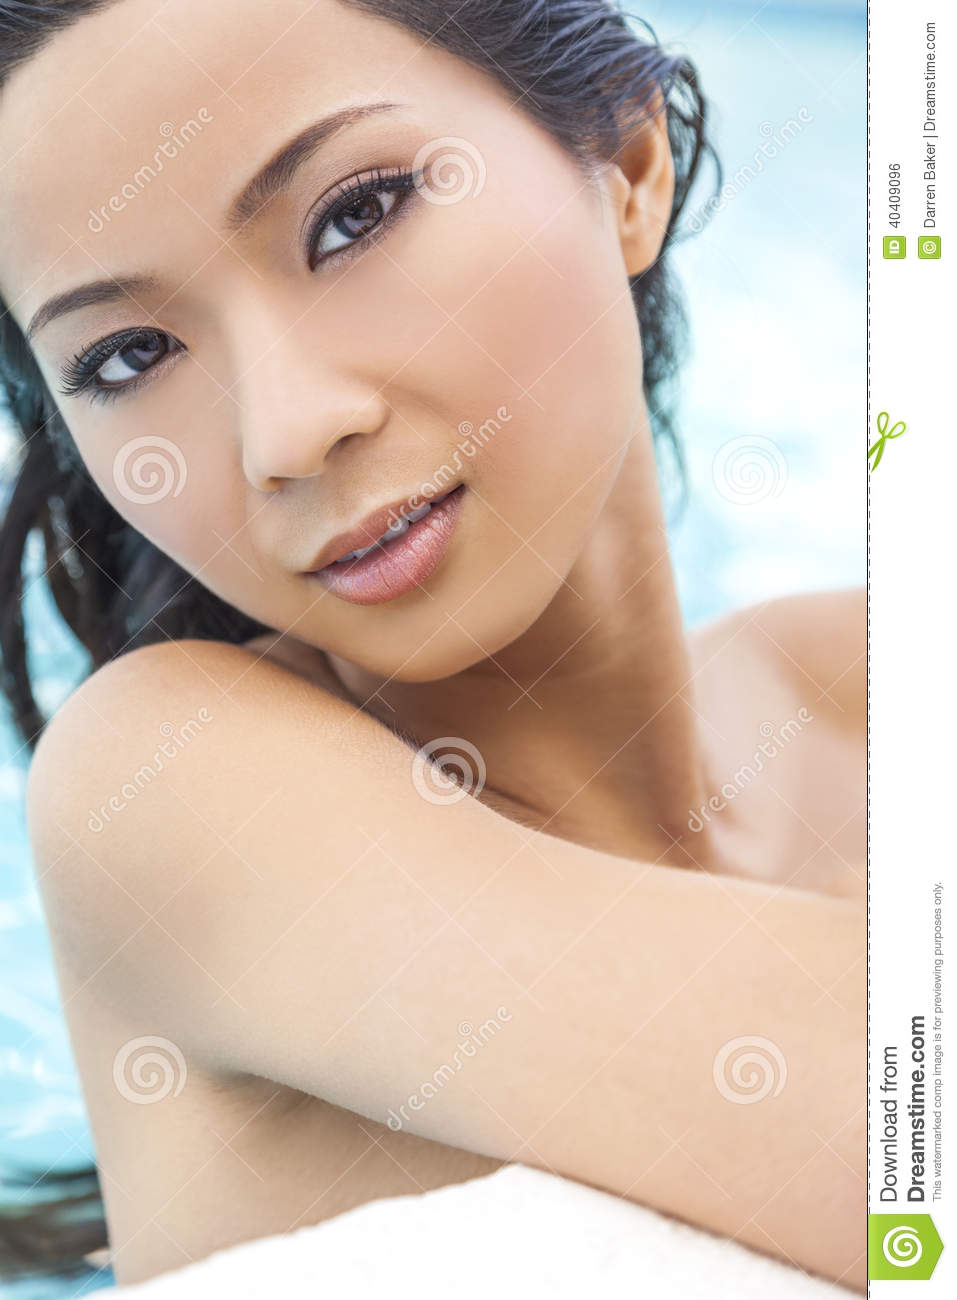 Nude Chinese Woman Girl In Swimming Pool Stock Photo -3419